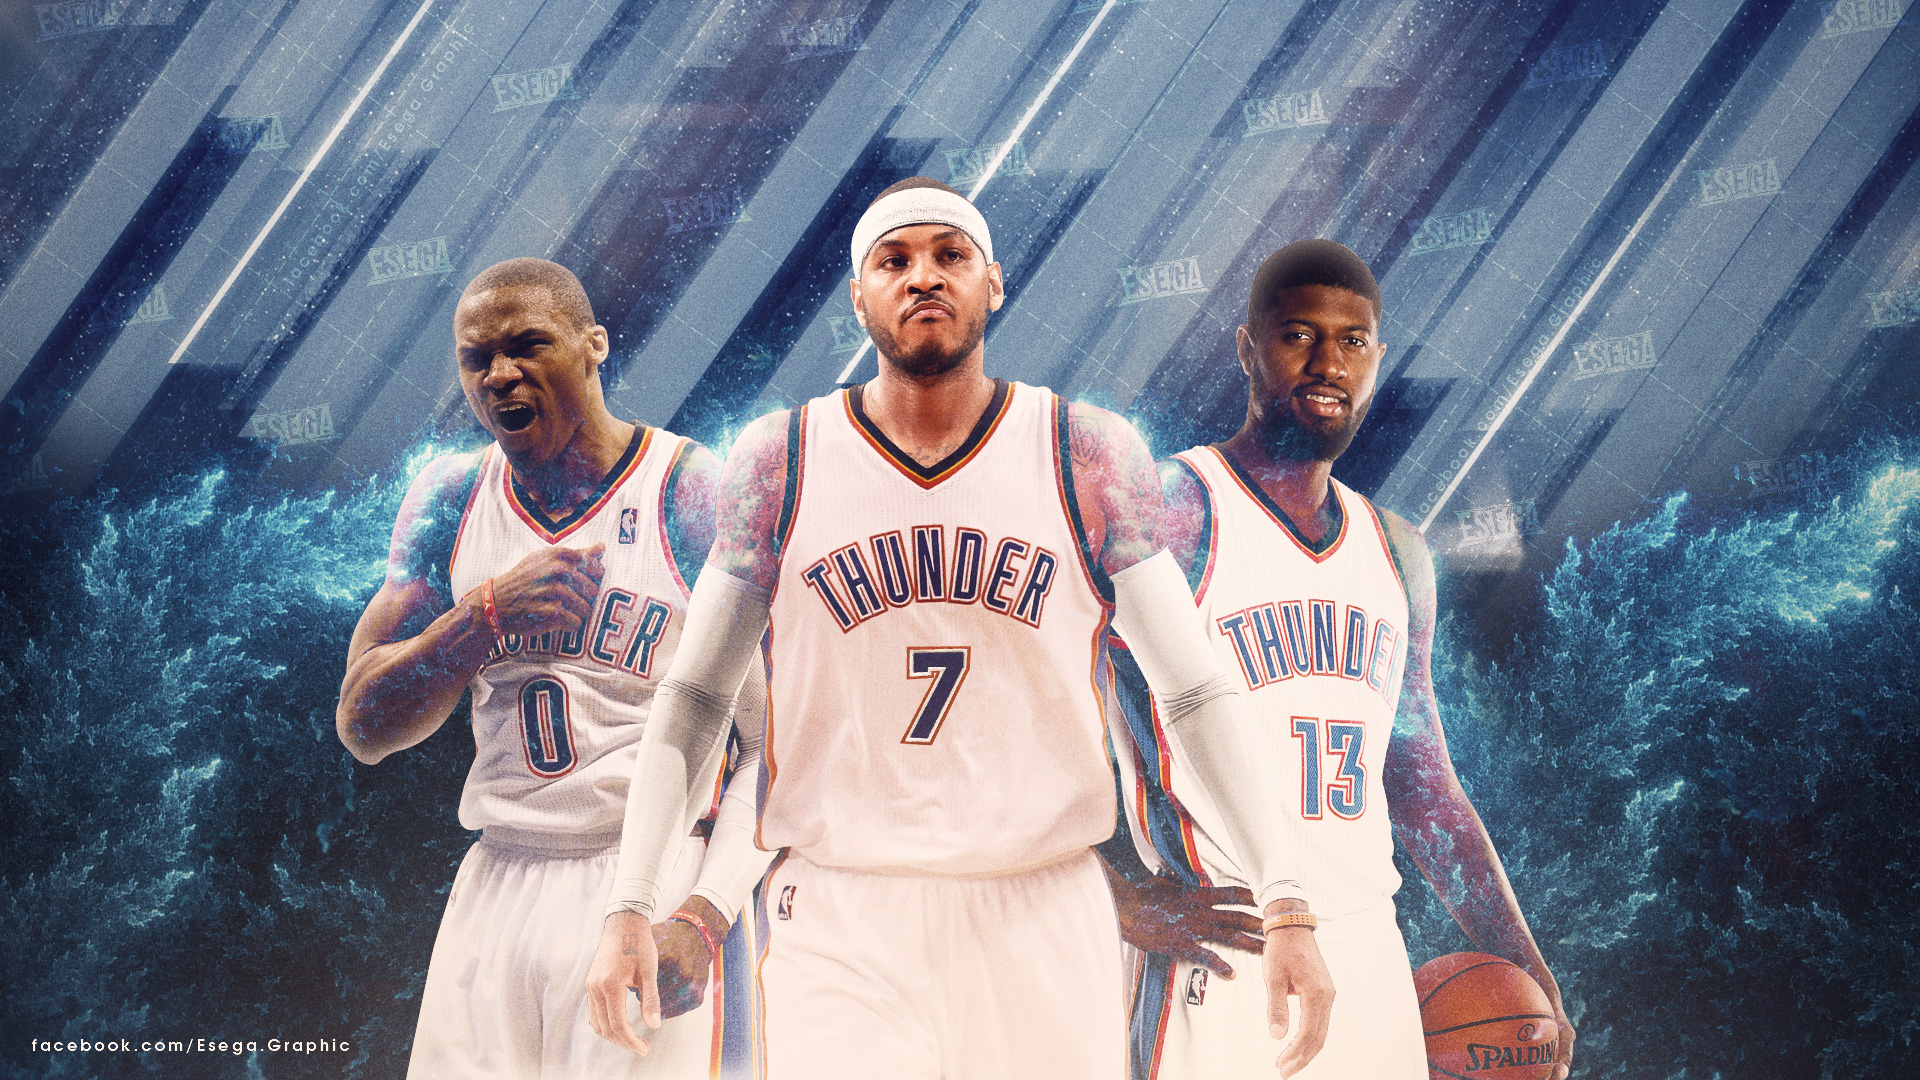 OKC Thunder Big 3 2017 1920x1080 Wallpaper